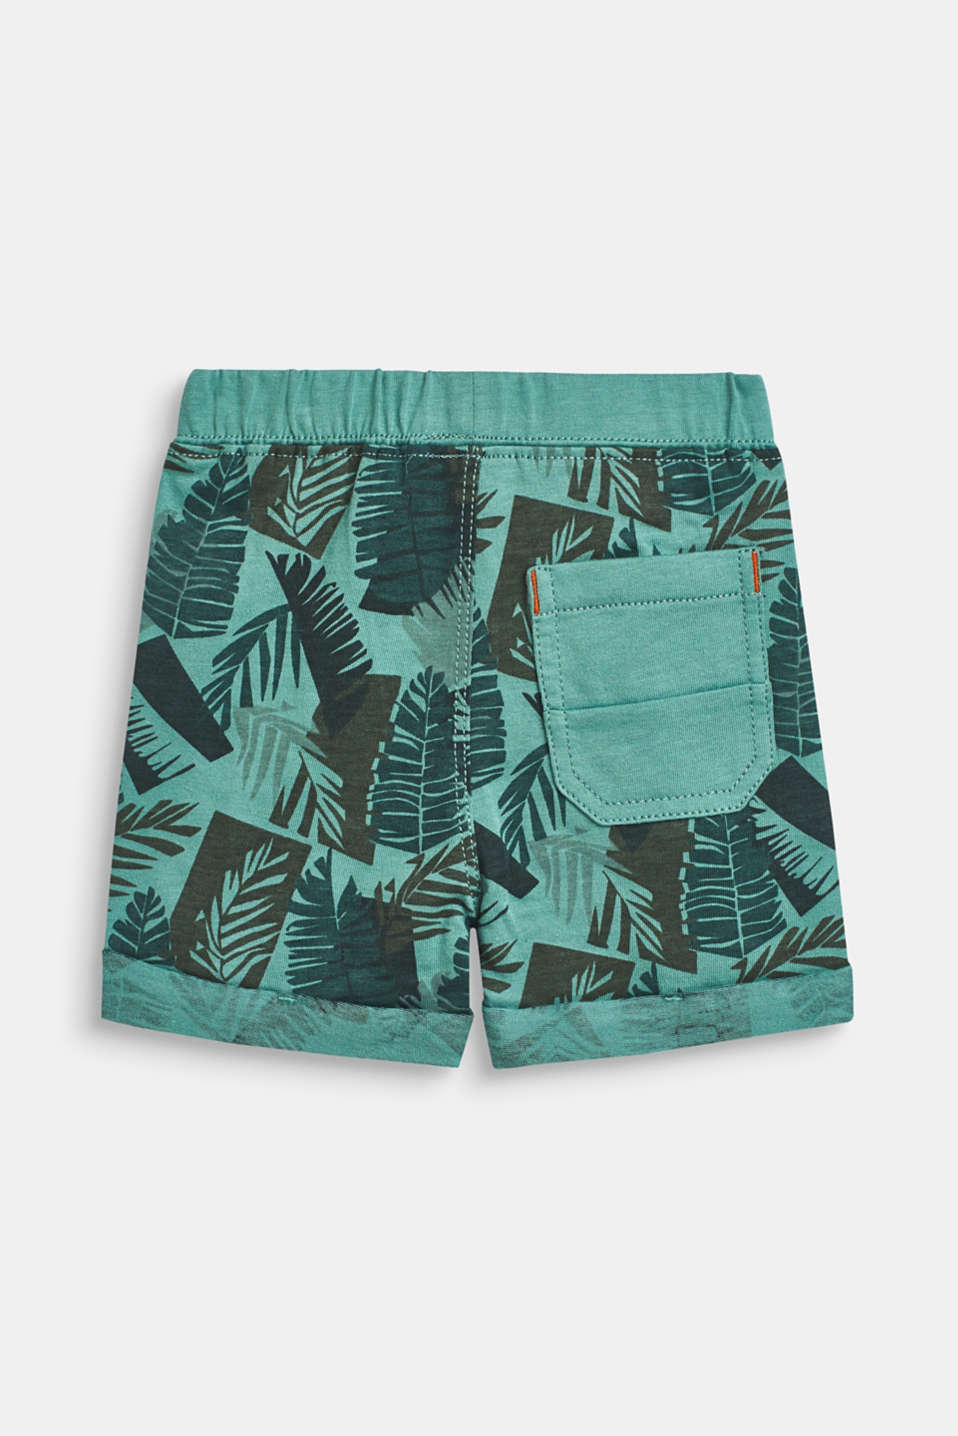 Sweatshirt shorts with a tropical print, 100% cotton, LCSOFT GREEN, detail image number 1